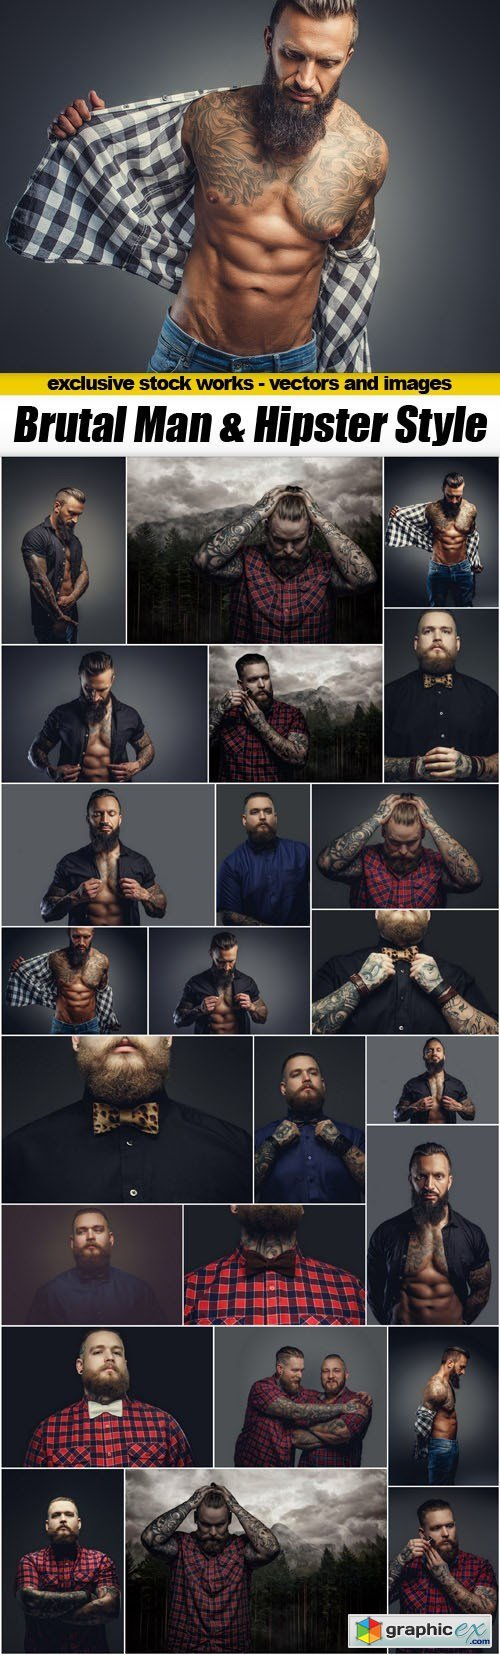 Brutal Man & Hipster Style - 25xUHQ JPEG